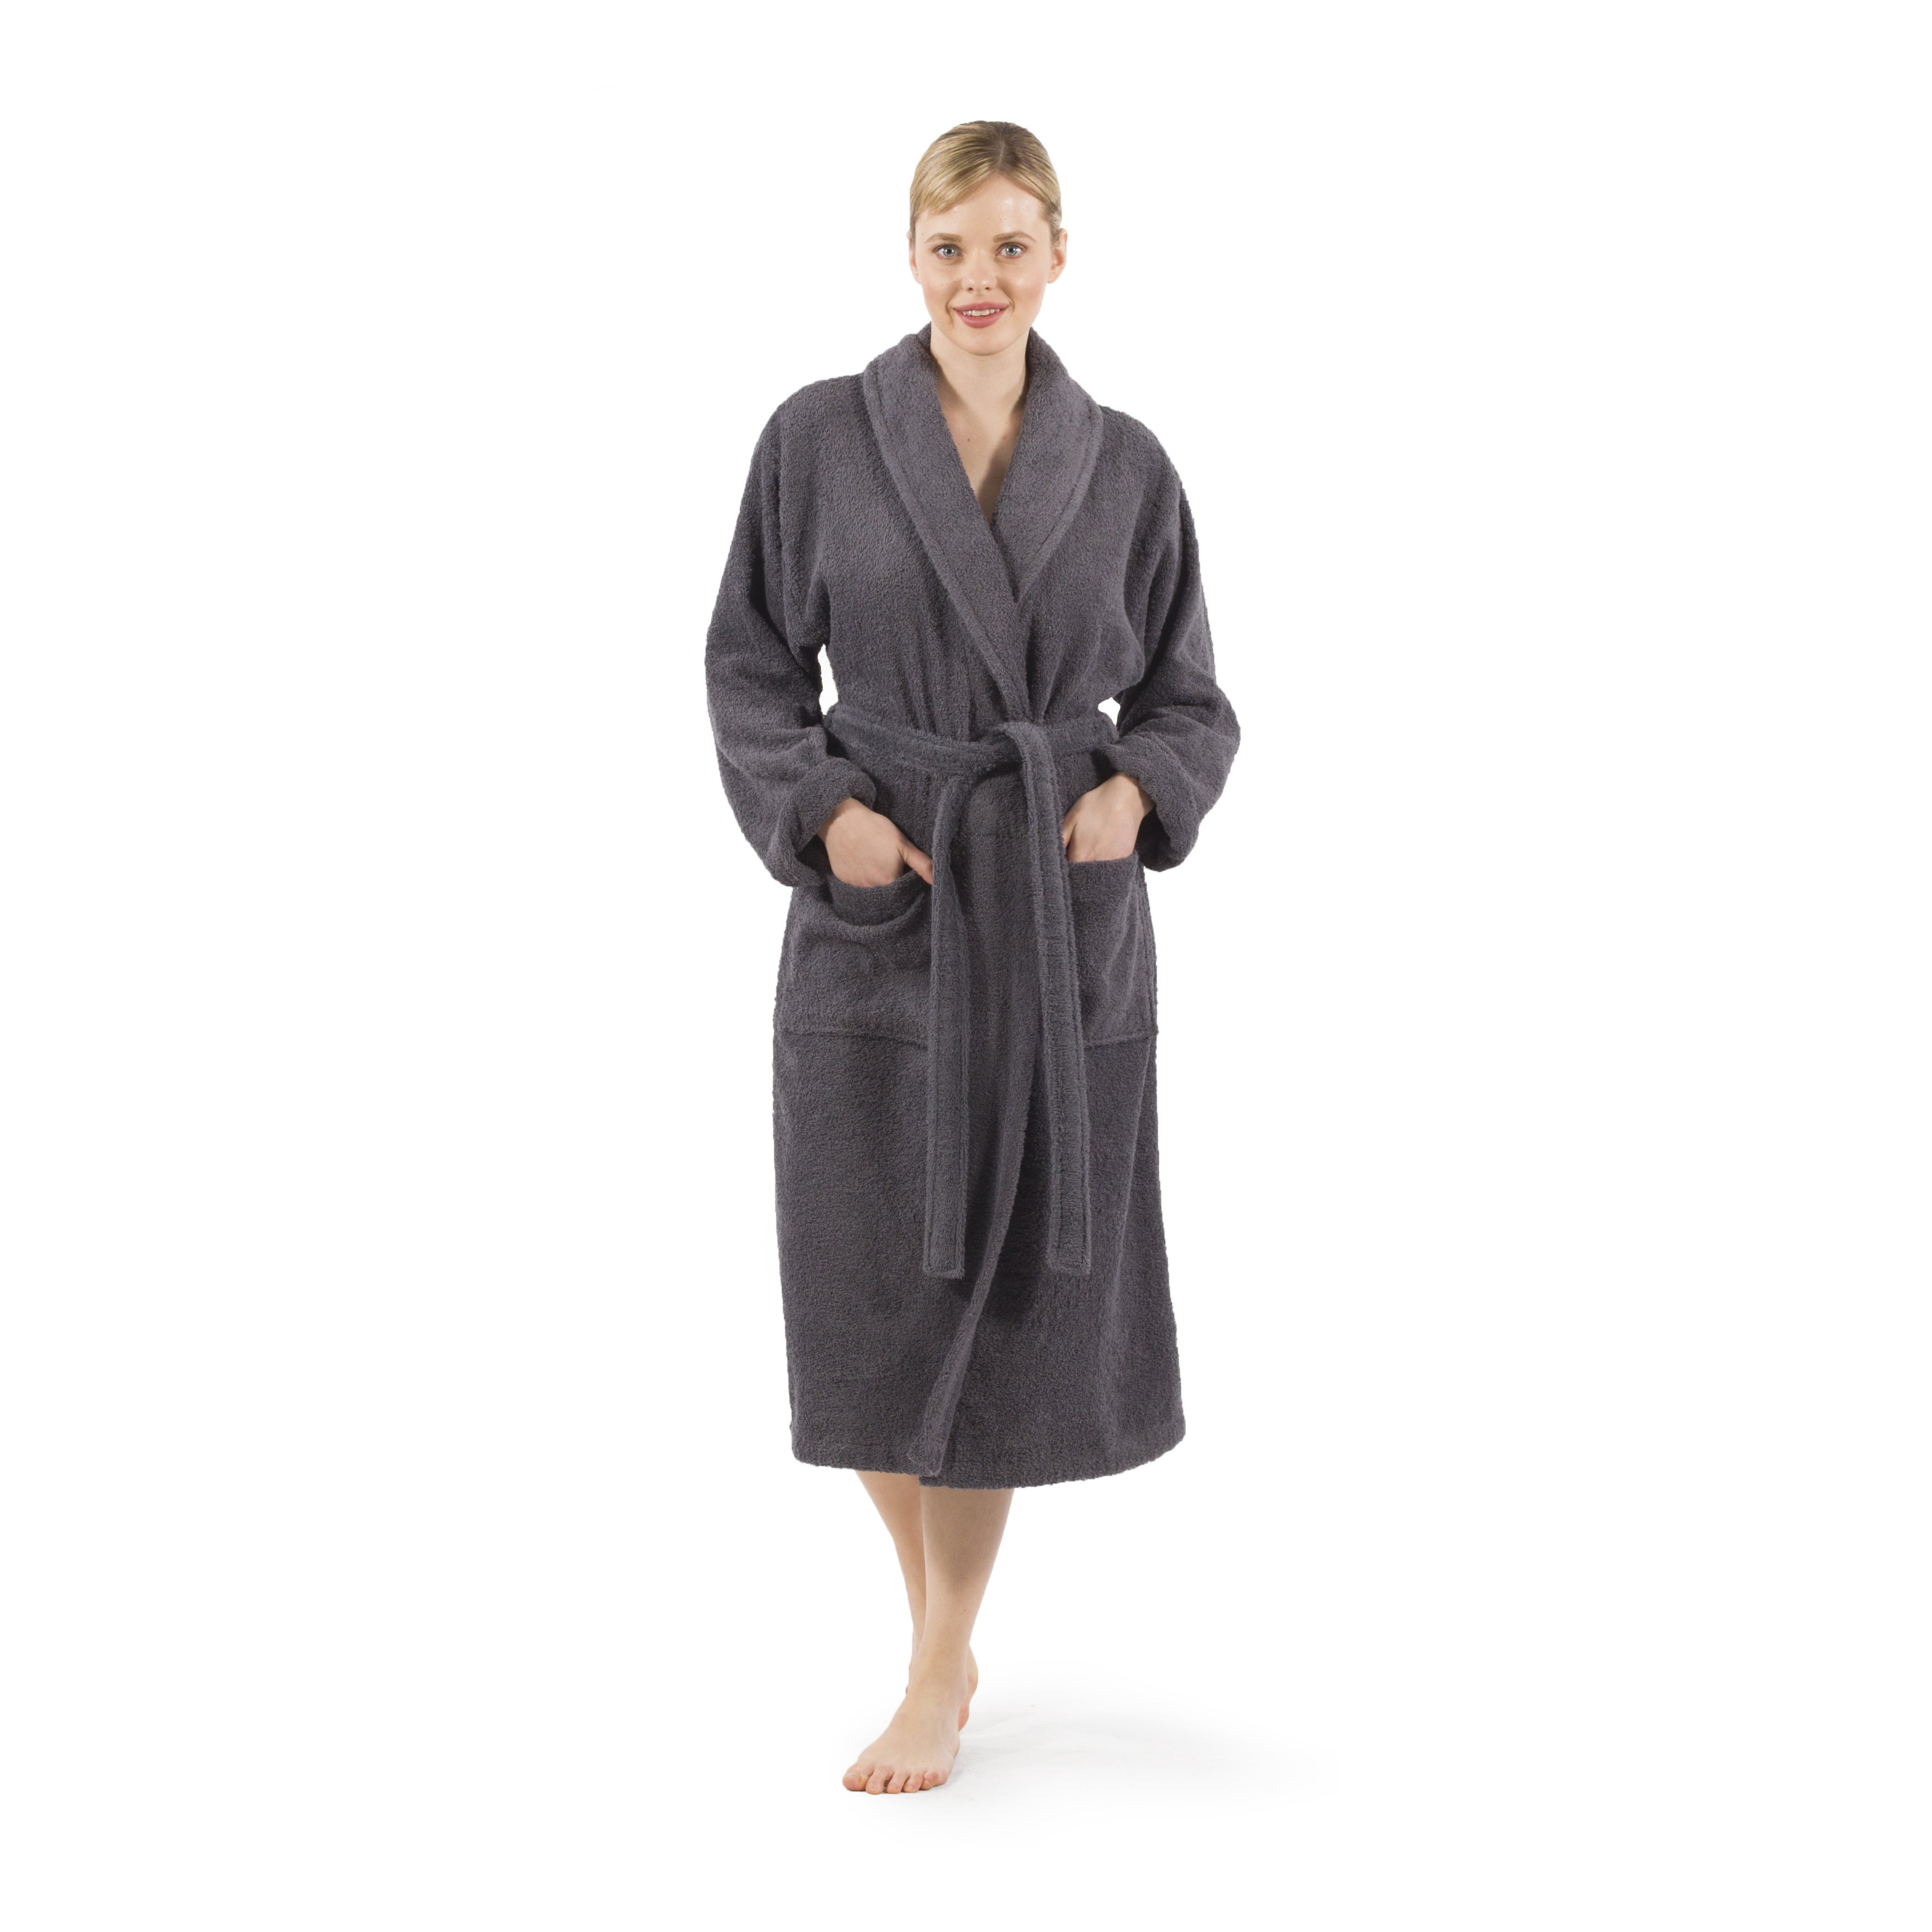 8f28d6e2ac Shop Authentic Hotel Spa Unisex Turkish Cotton Terry Cloth Bath Robe - On  Sale - Free Shipping Today - Overstock - 4757191